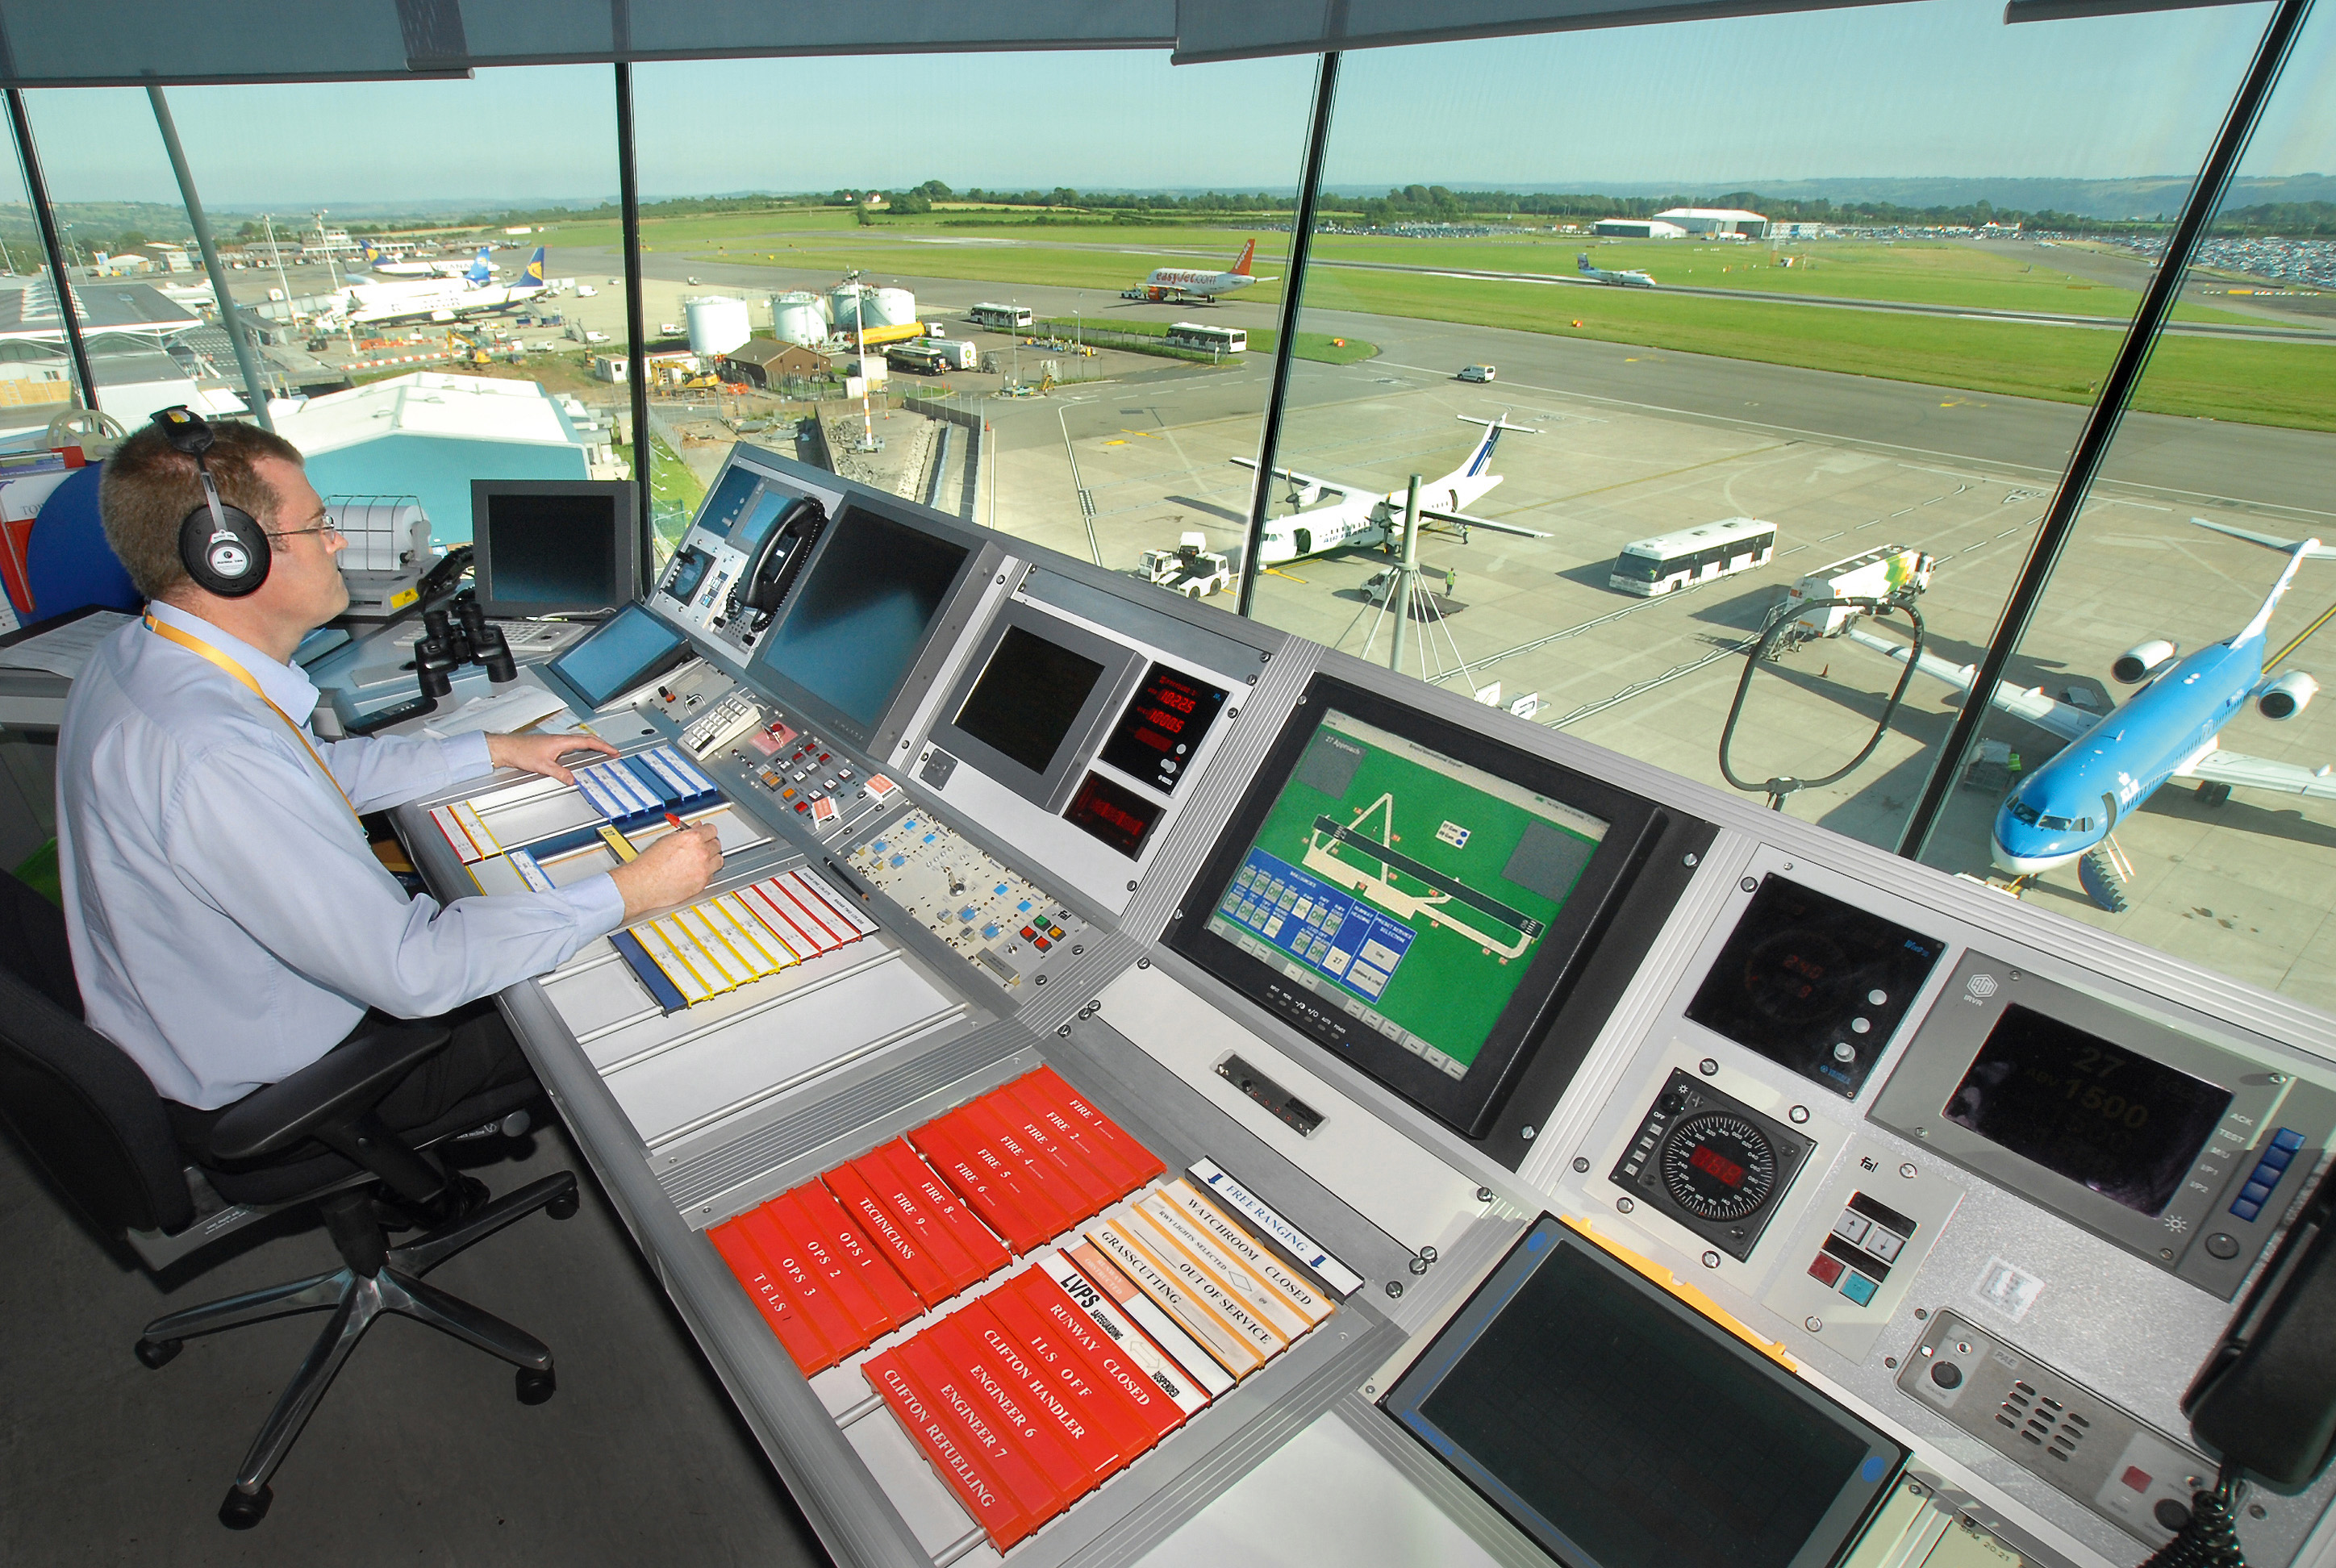 Trainee Air Traffic Controller >> NATS helps future-proof airfield voice communications at Bristol Airport - NATS